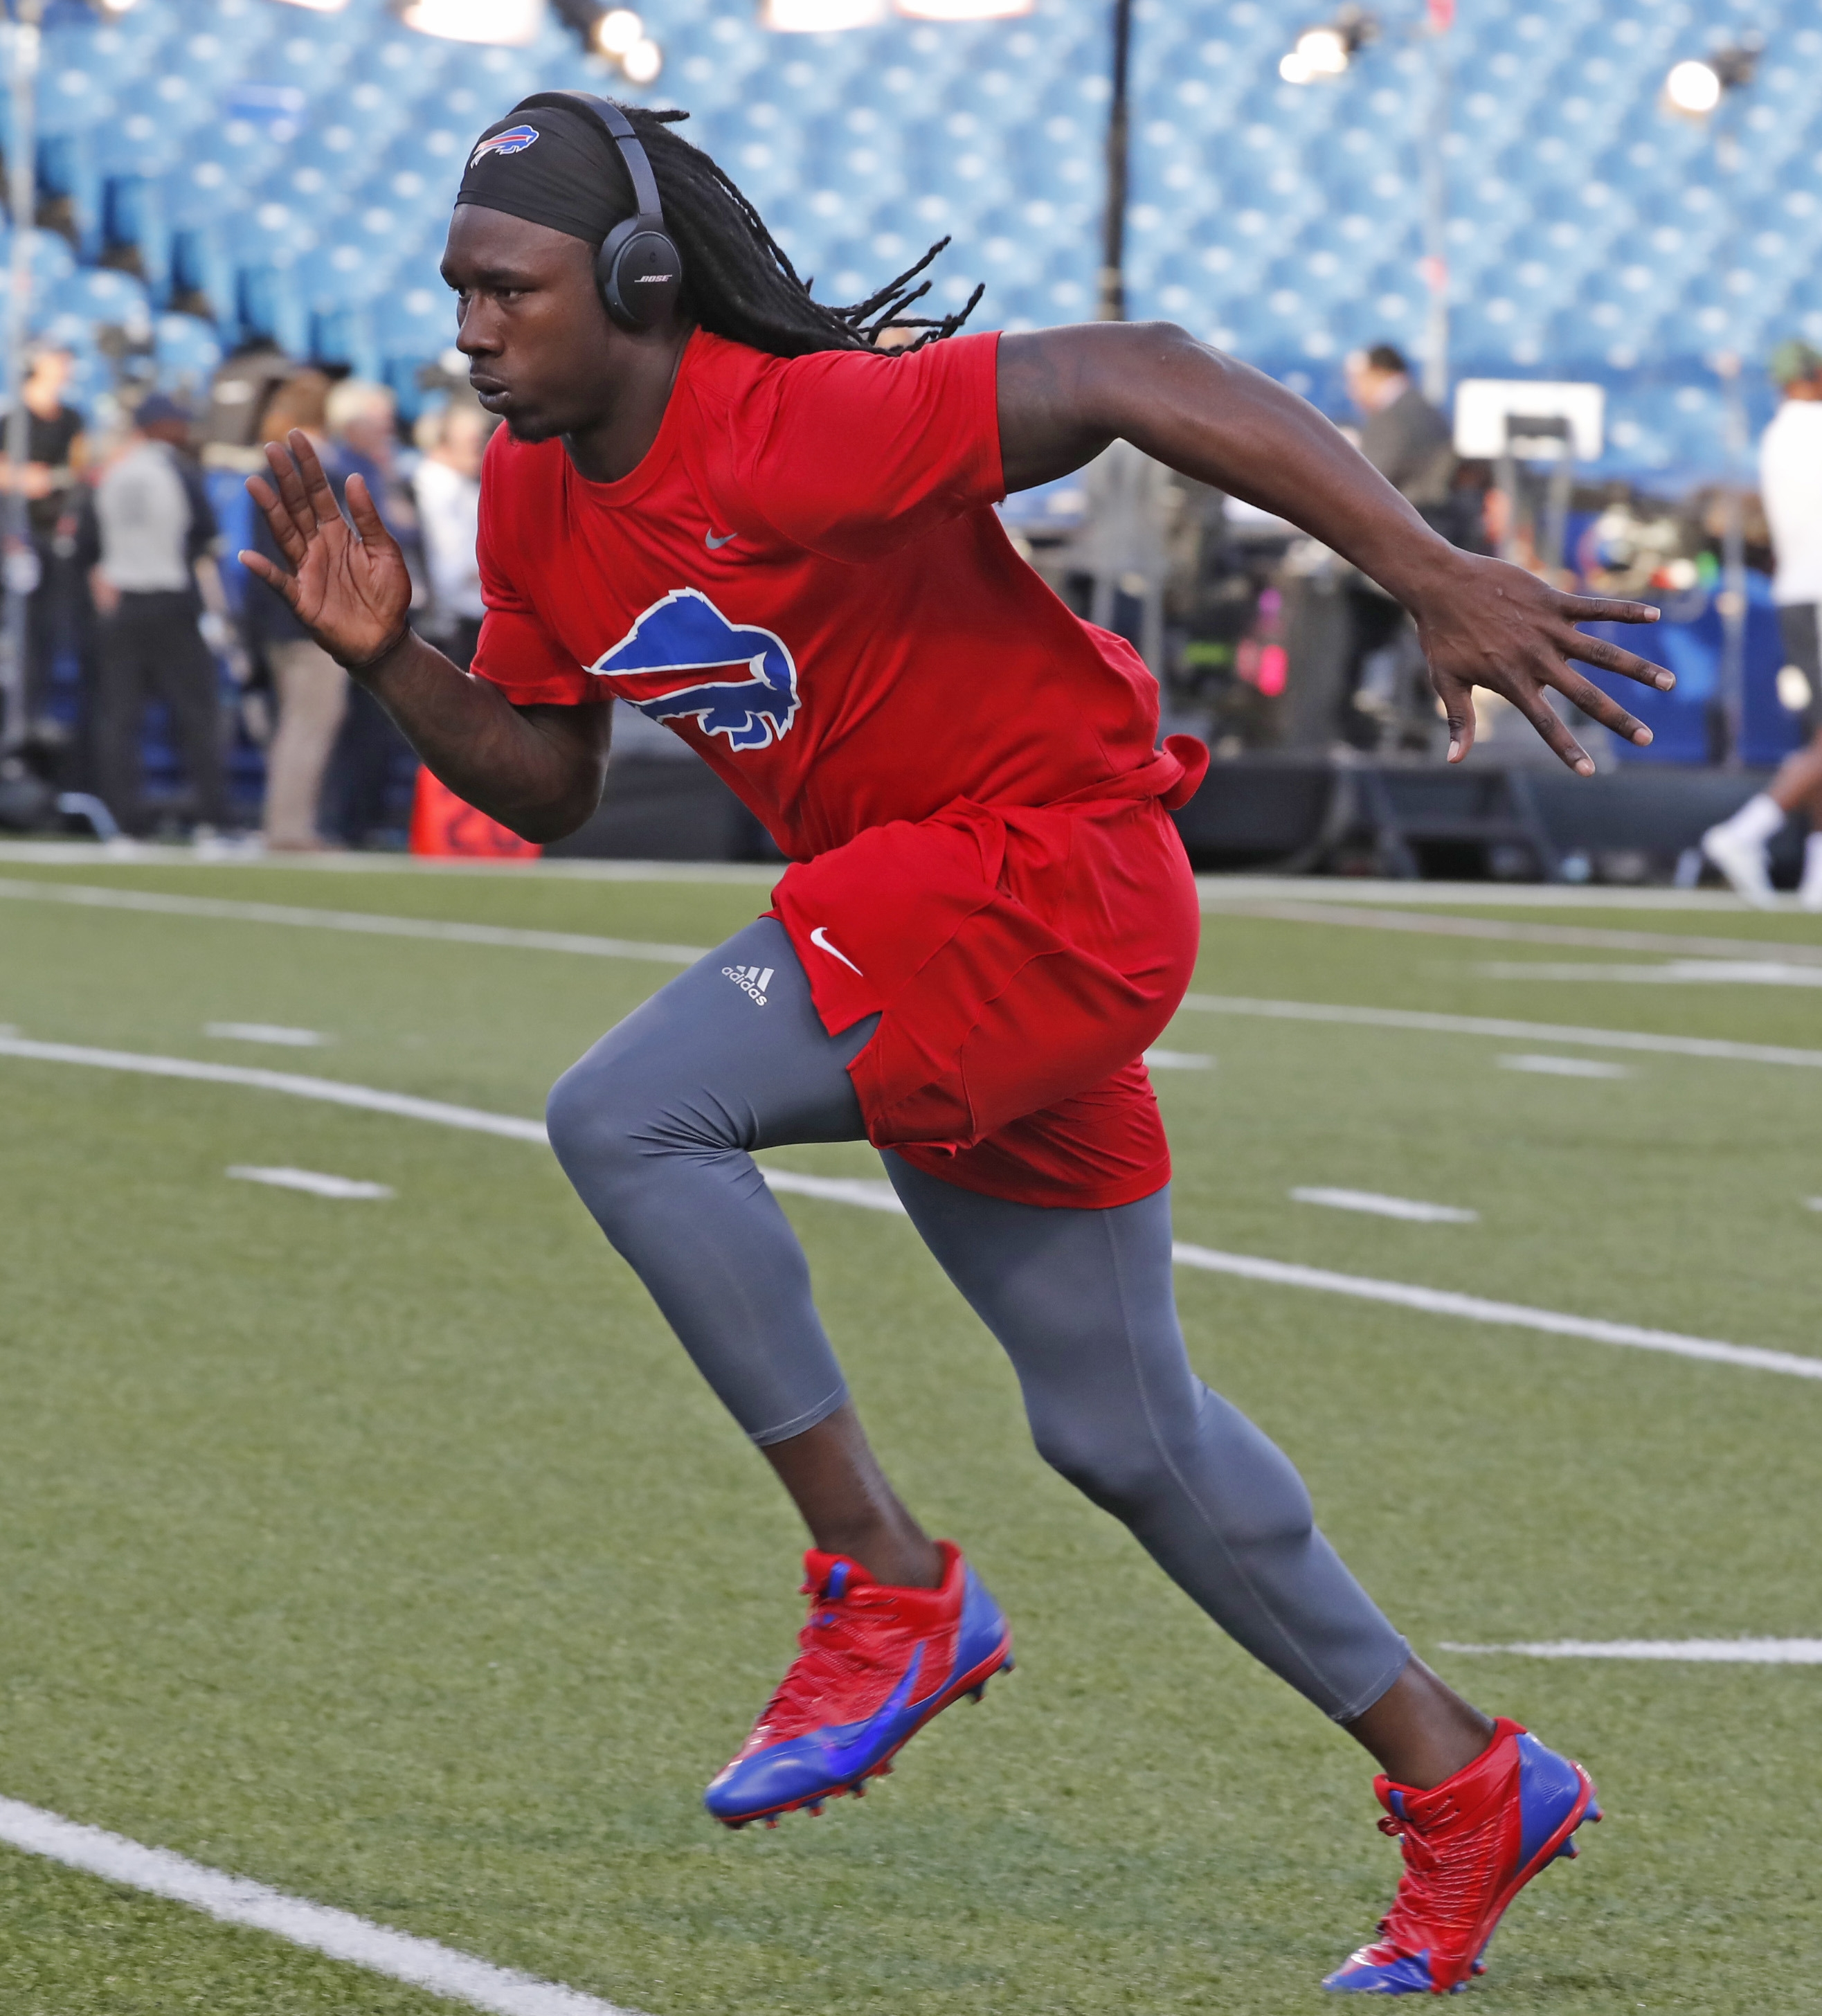 Buffalo Bills Sammy Watkins workouts prior to pregame and the New York Jets at New Era Field on Thursday, Sept. 15, 2016. (Harry Scull Jr./Buffalo News)